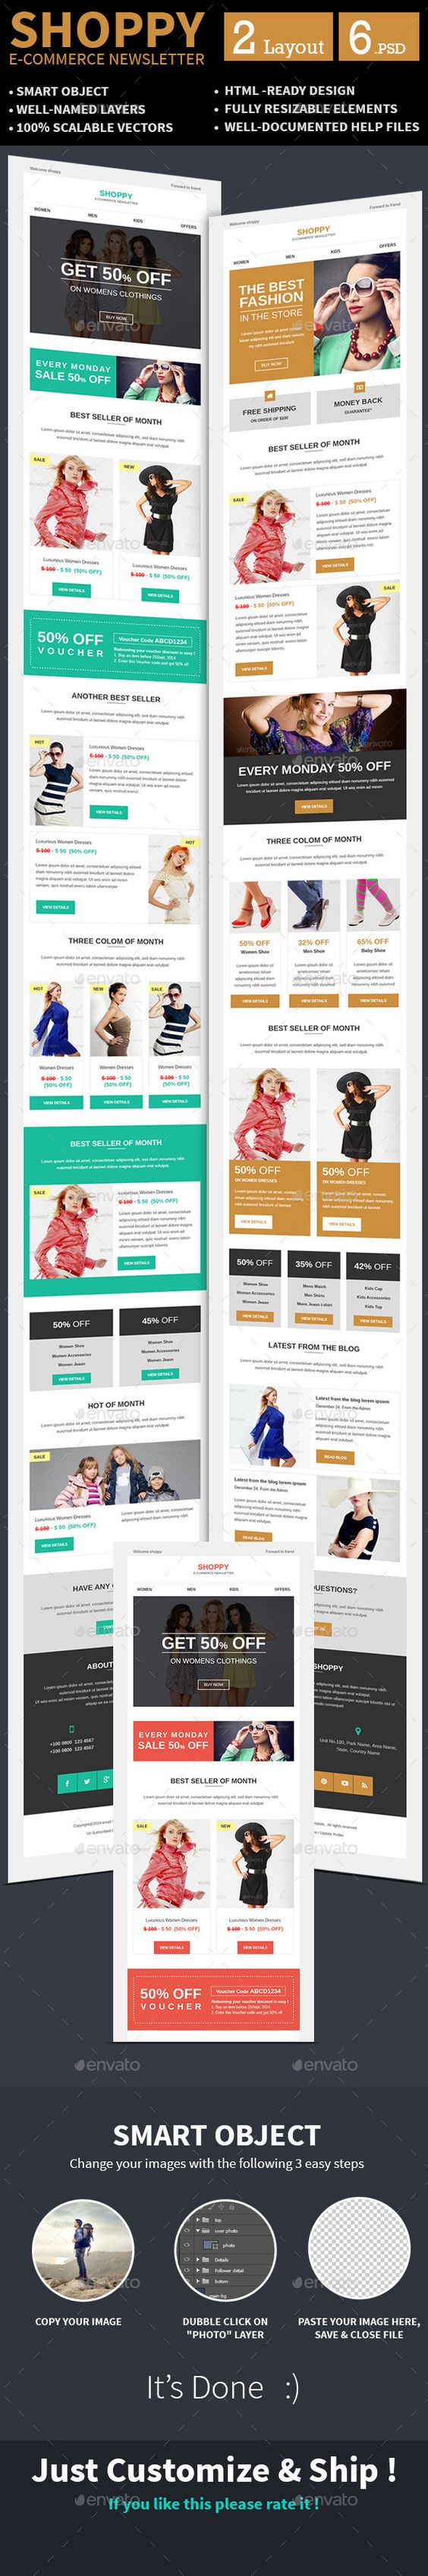 e commerce special offer newsletter template psd here e commerce special offer newsletter template psd here